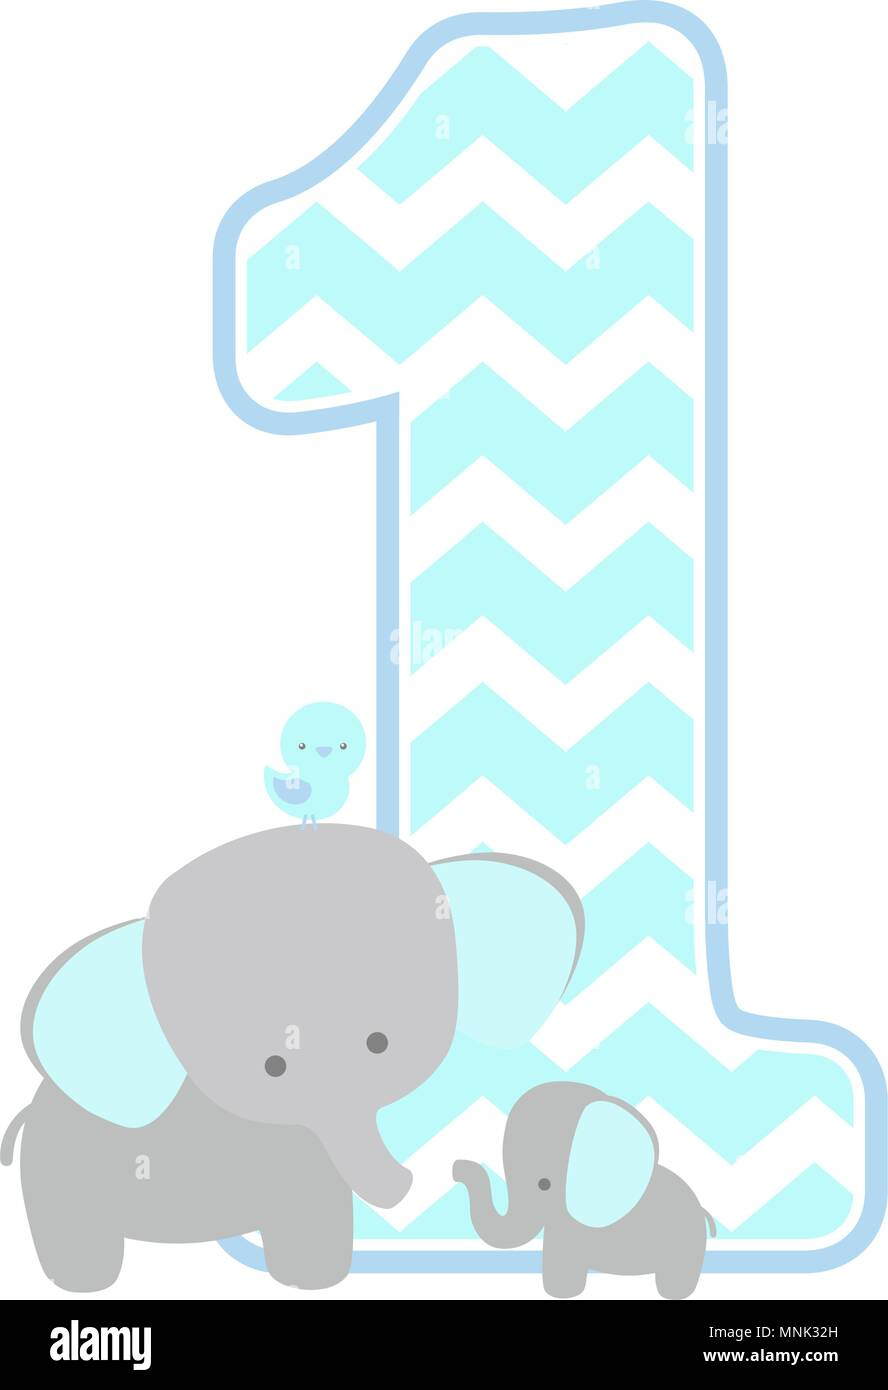 Number 1 With Chevron Pattern Cute Elephant And Little